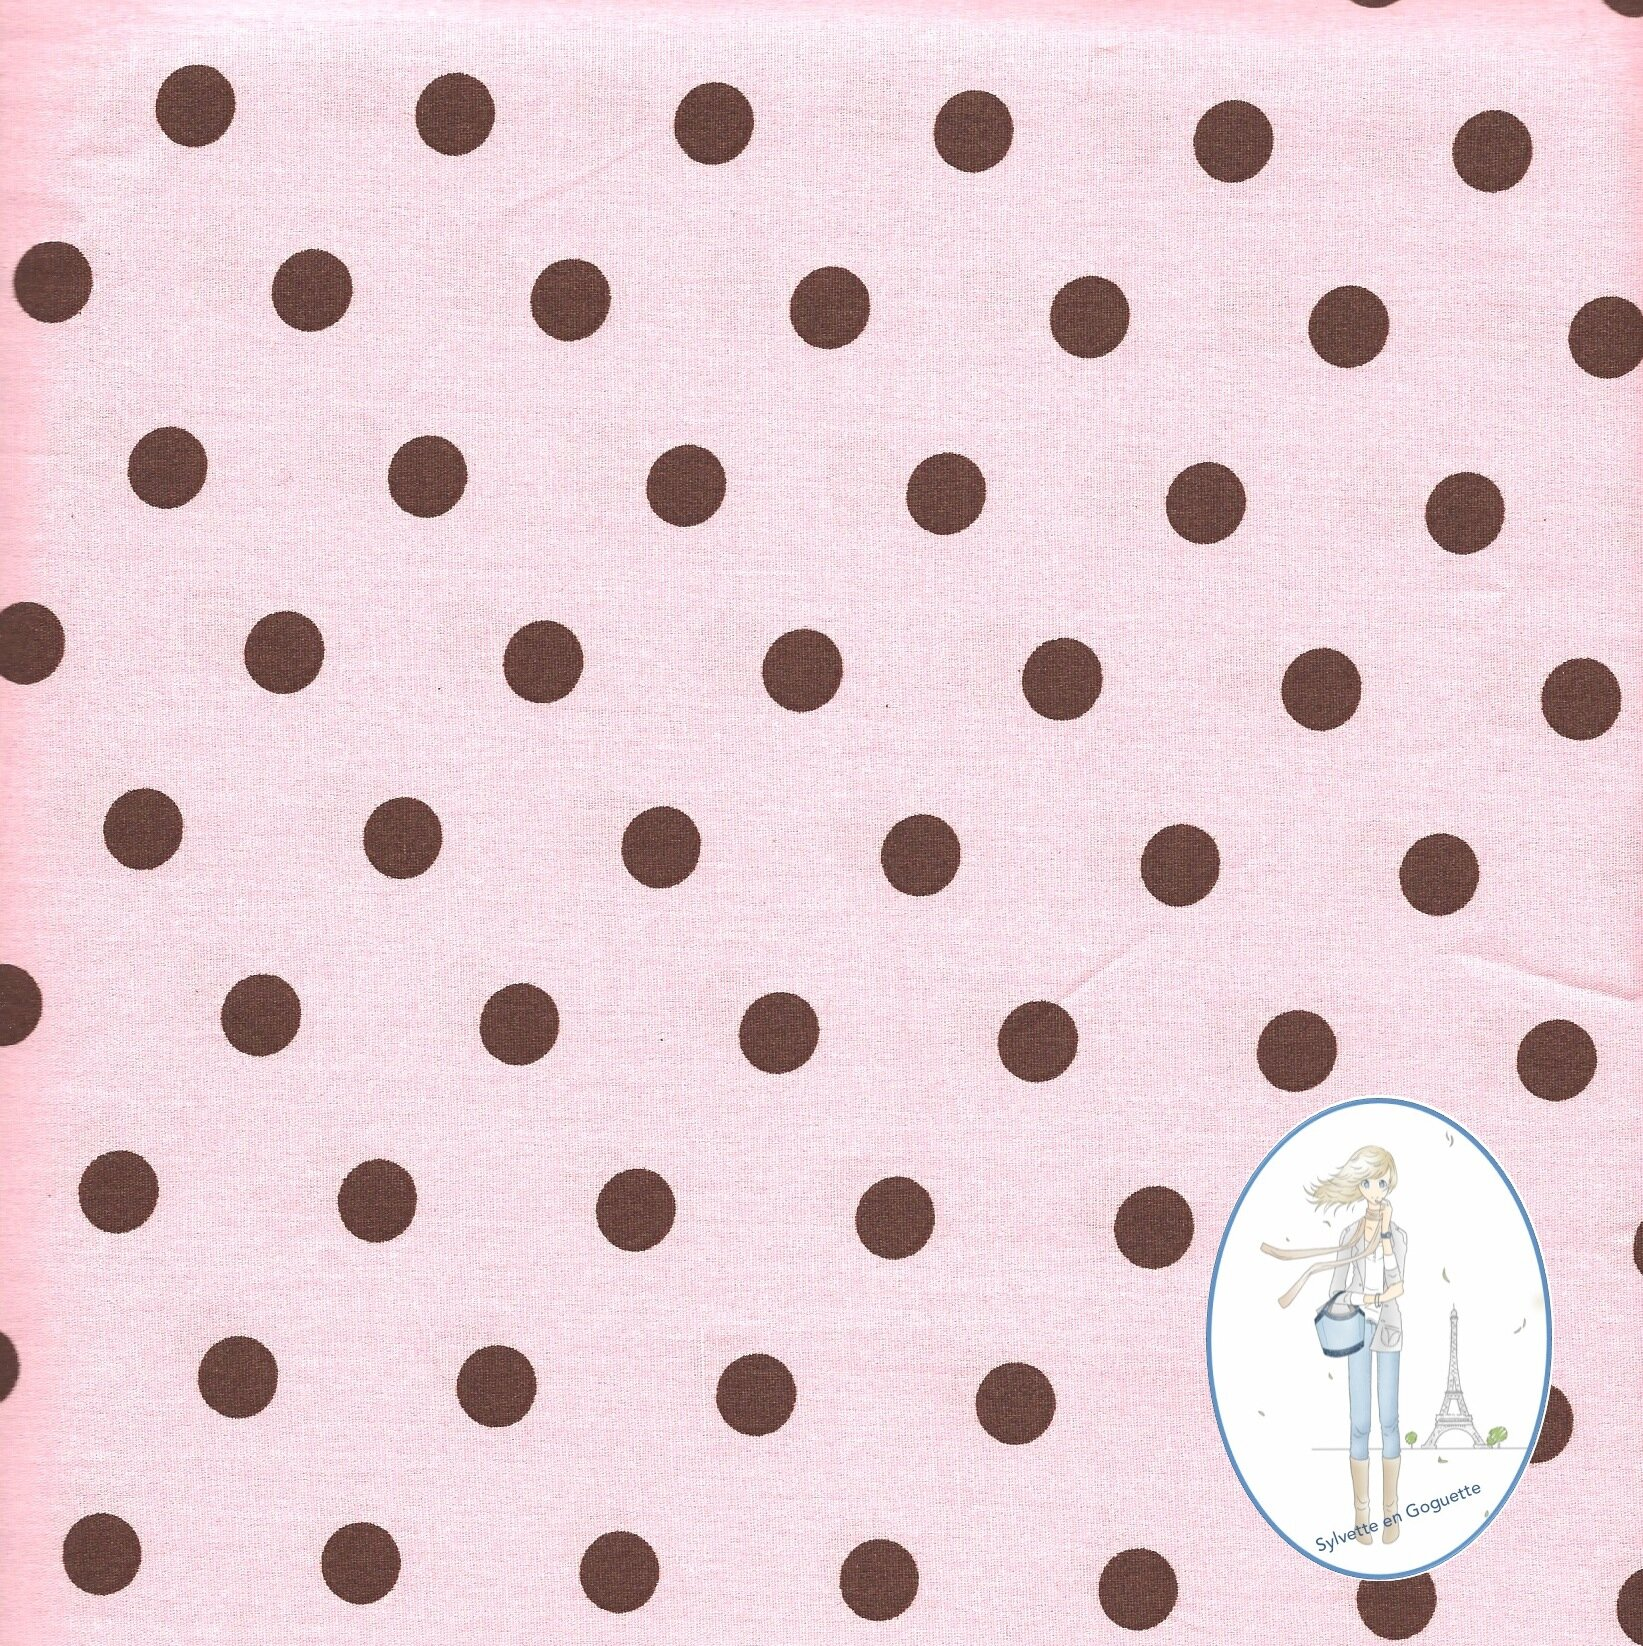 Couture coupon tissu gros pois chocolat fond rose 511 for Couture de tissus